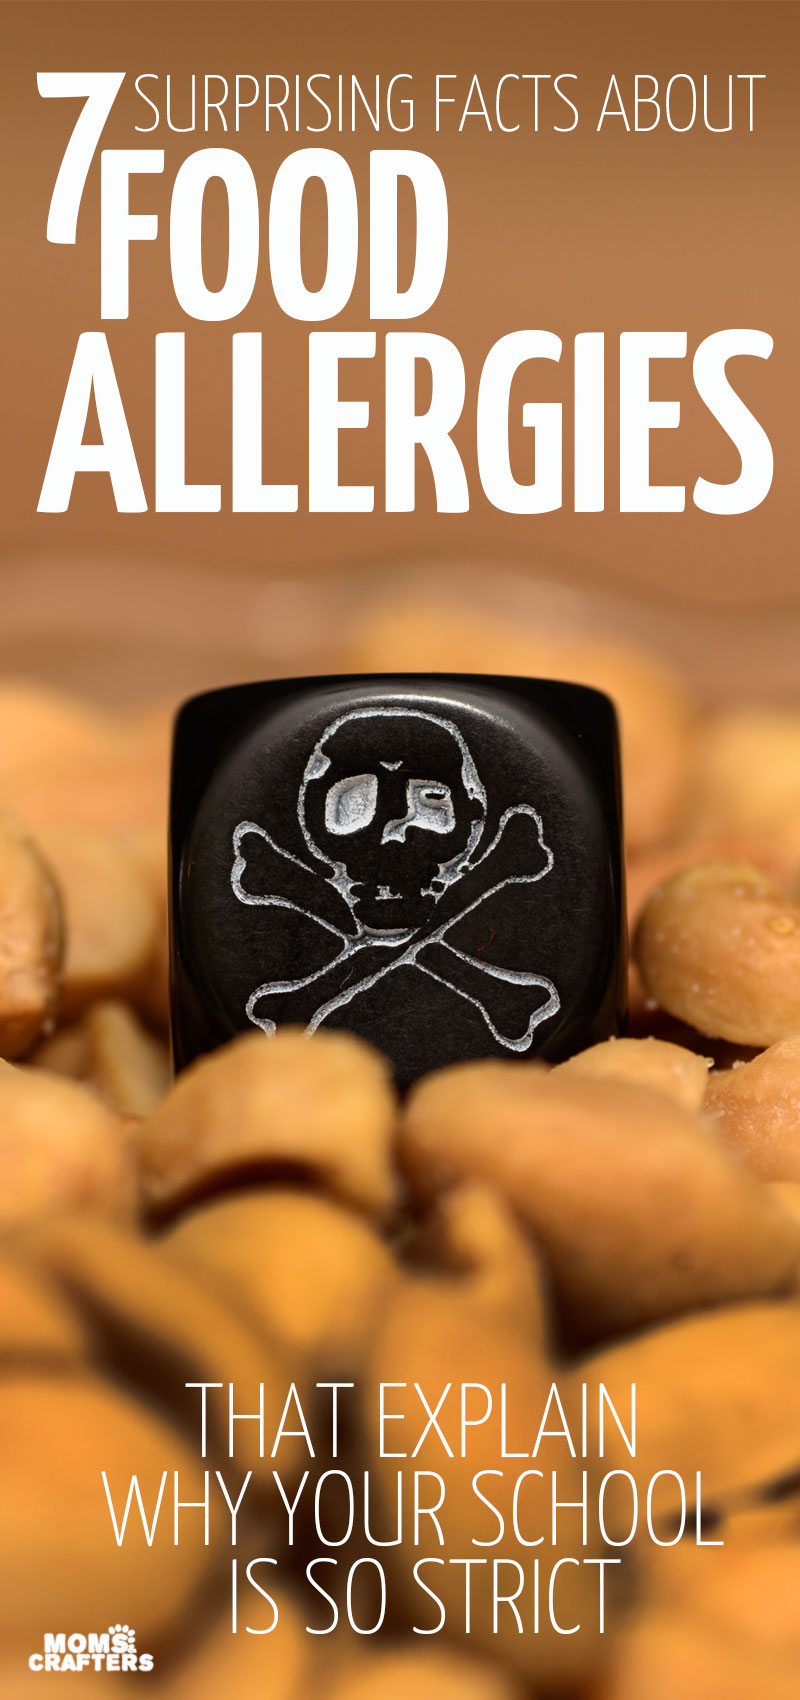 What's the deal with school rules and food allergies anyway? Why no traces? Help spread some allergy awareness by sharing this post which highlights the severity of many food allergies, airborne reactions and anaphylaxis, peanut allergies, tree nut allergies, and more important allergy facts!